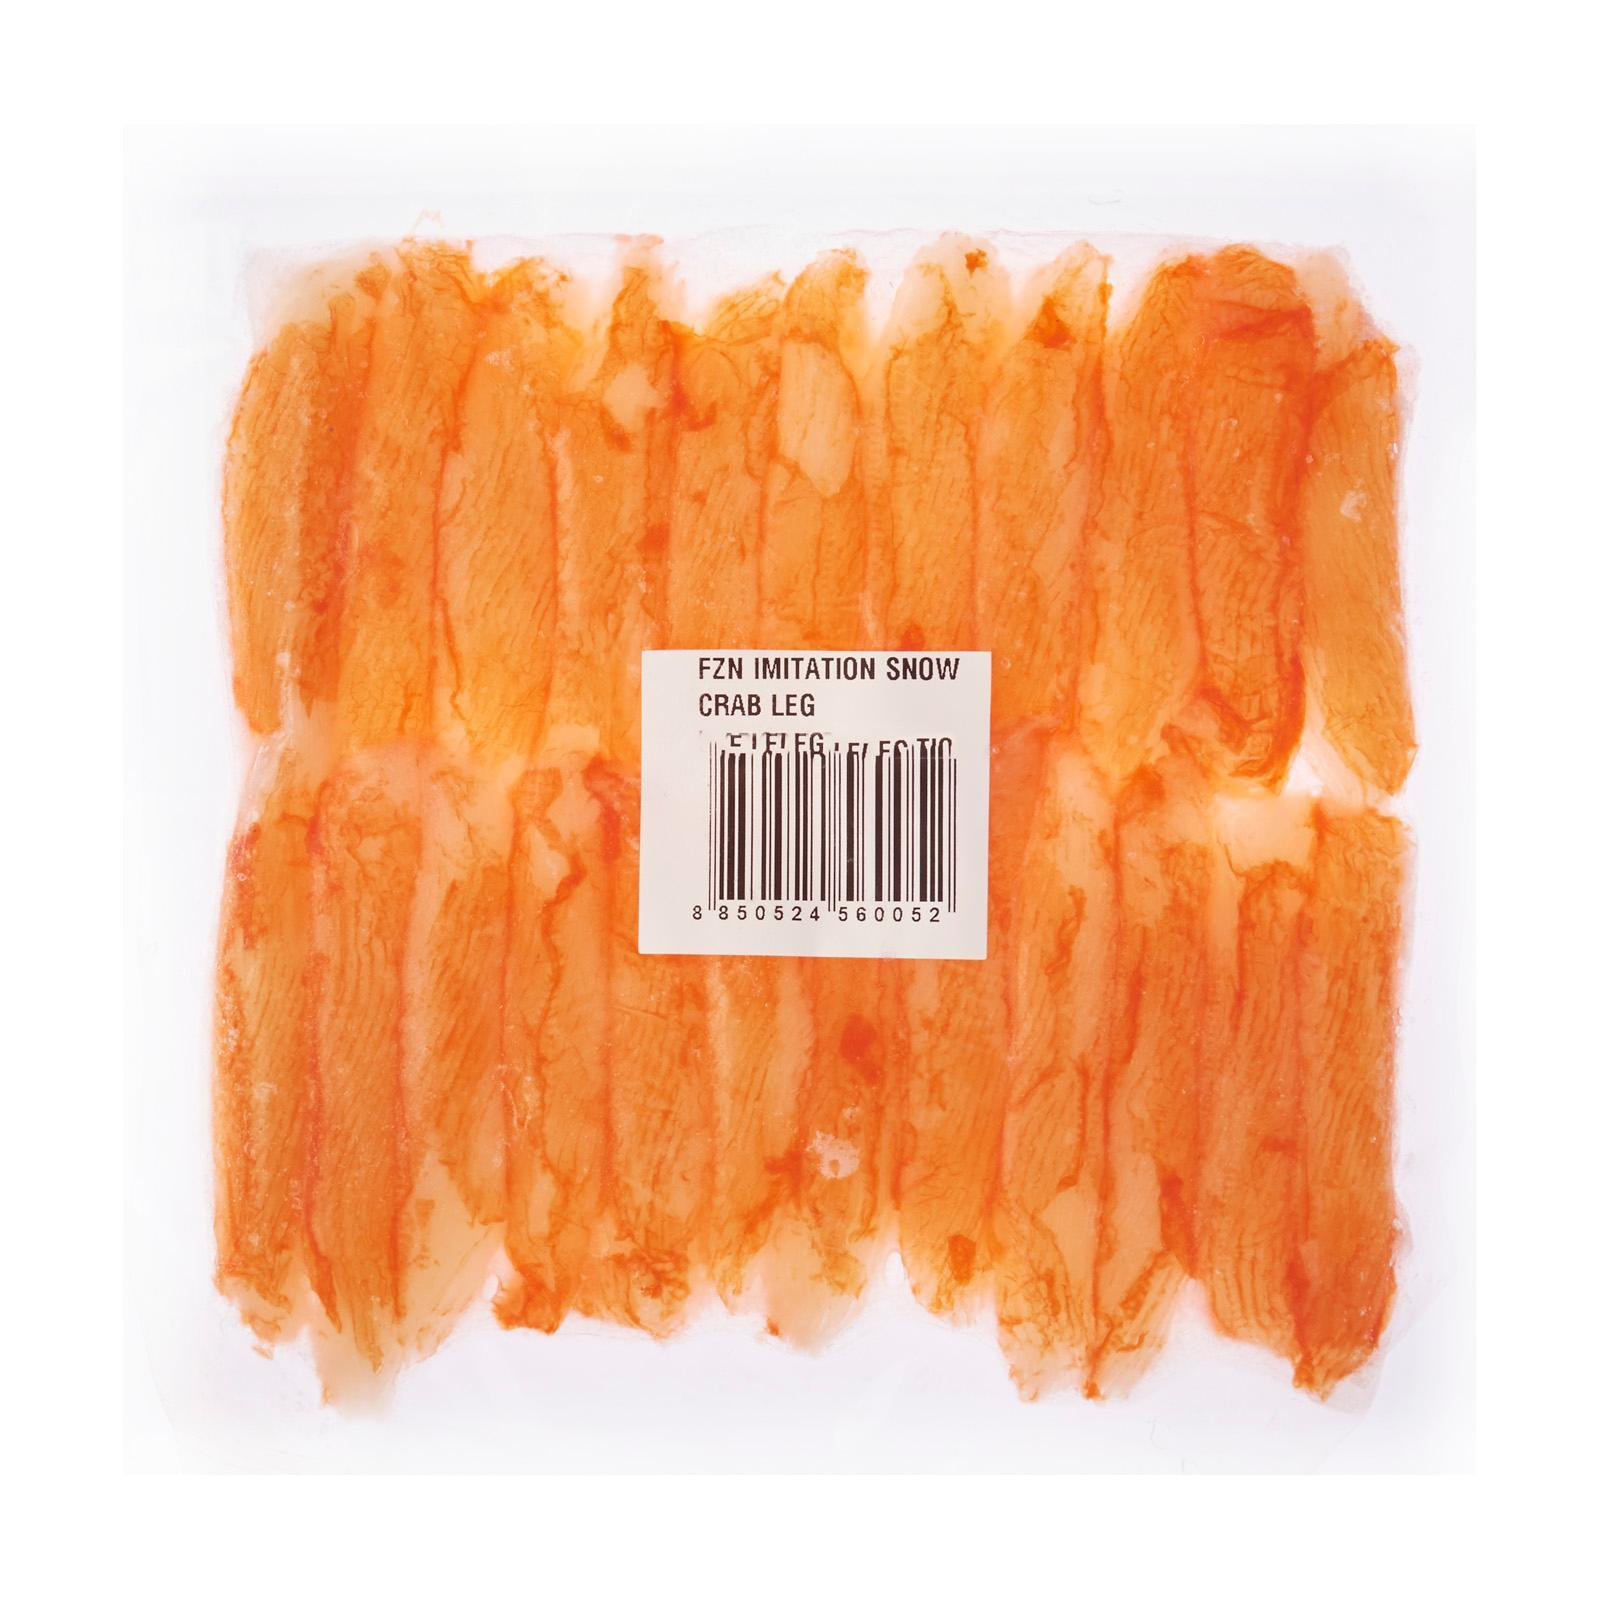 Ehf Imitation Snow Crab Leg - Frozen By Redmart.